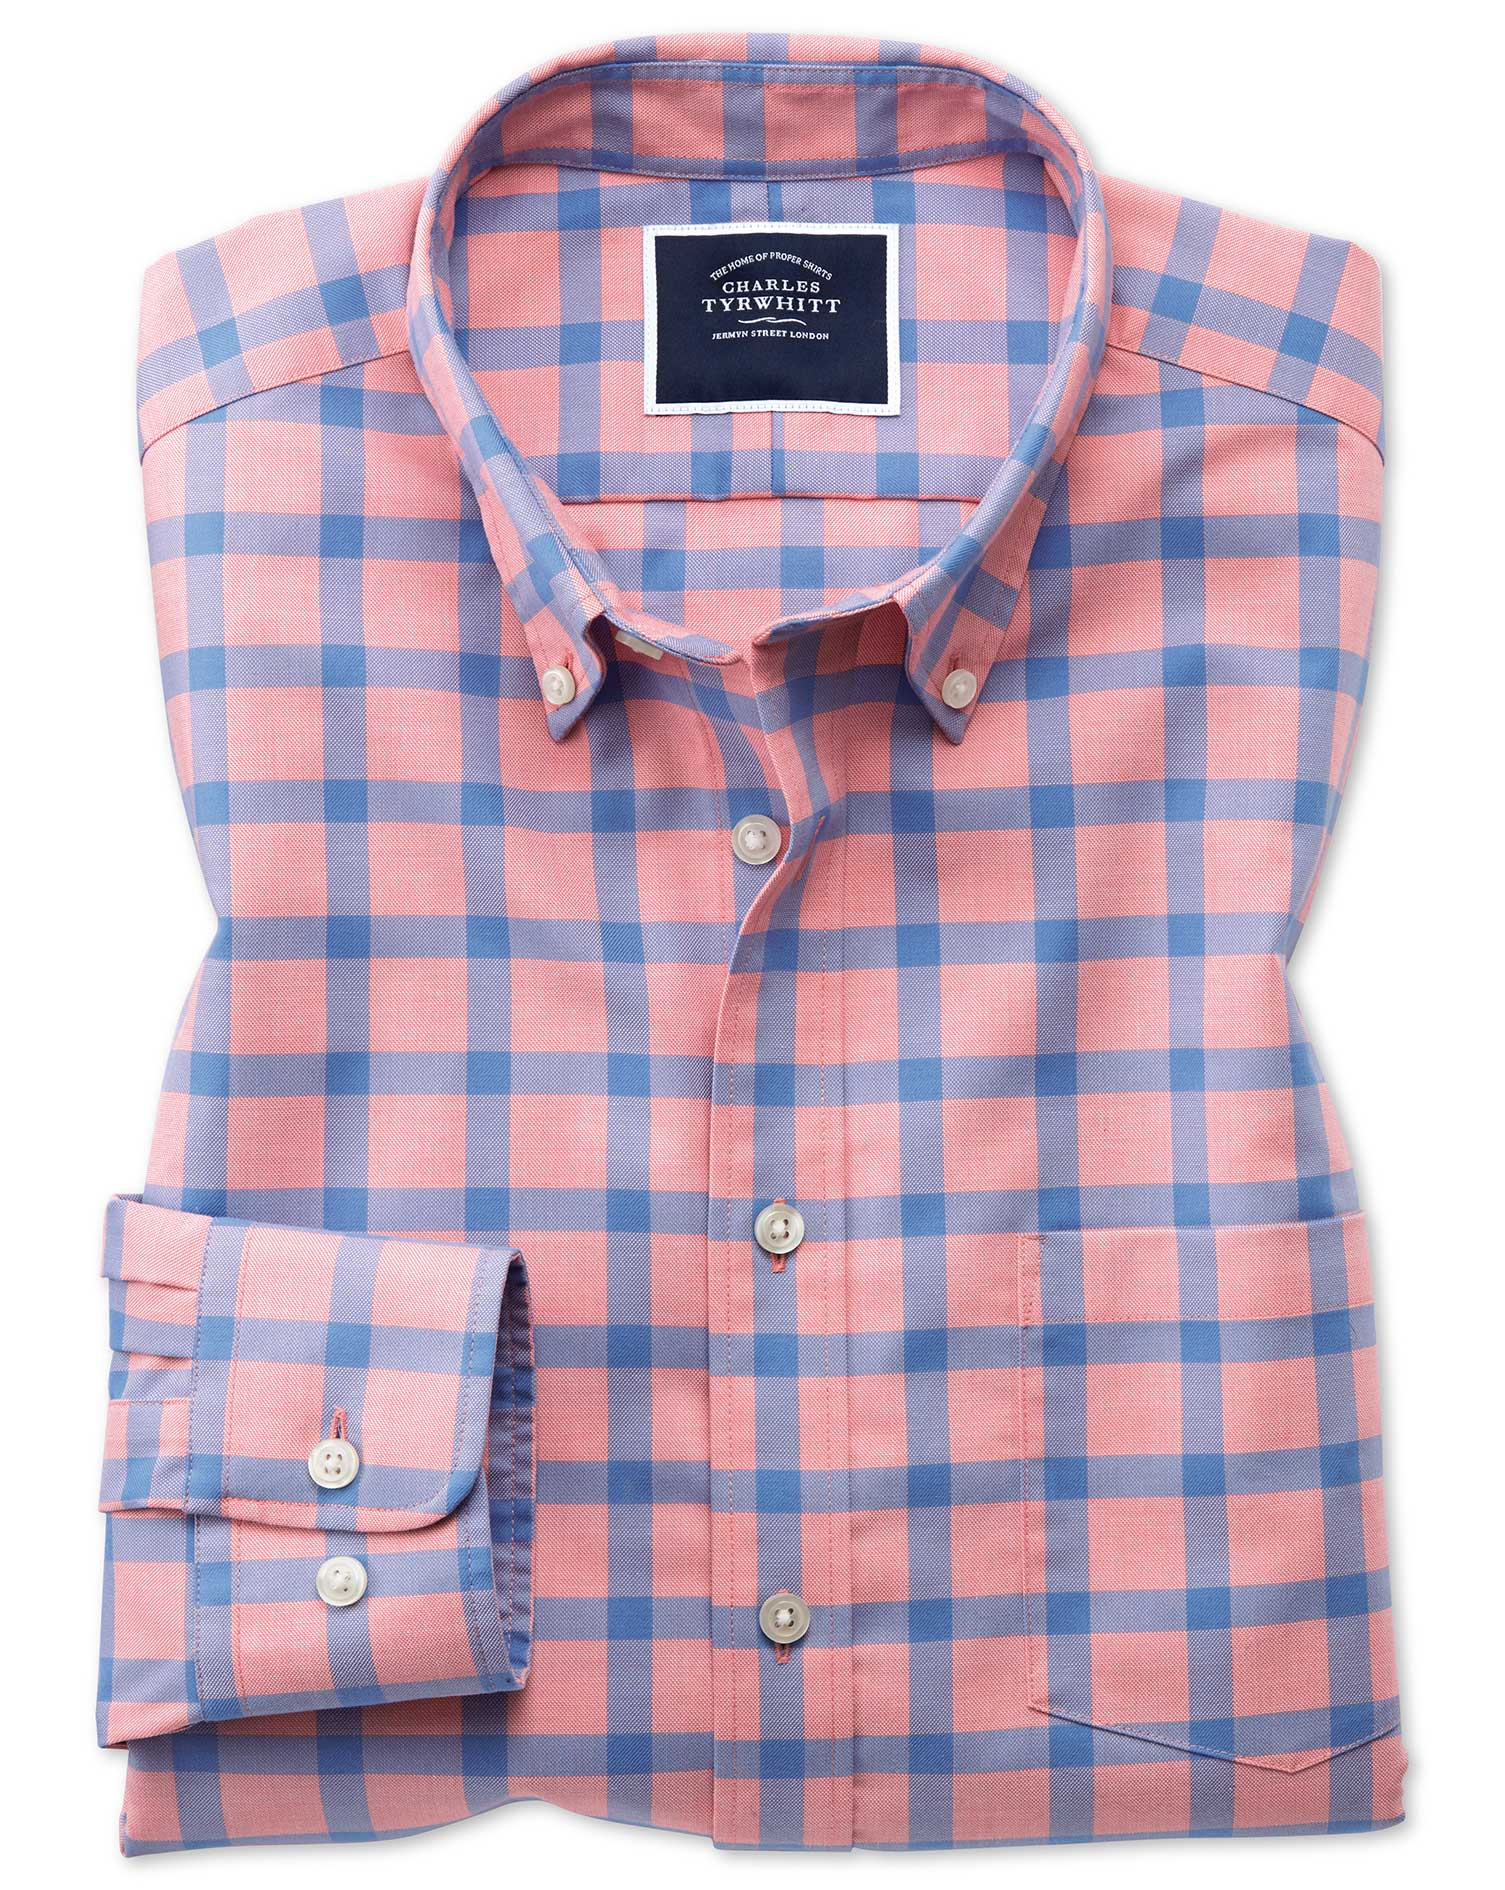 Slim Fit Coral Block Check Soft Washed Non-Iron Twill Cotton Shirt Single Cuff Size Small by Charles